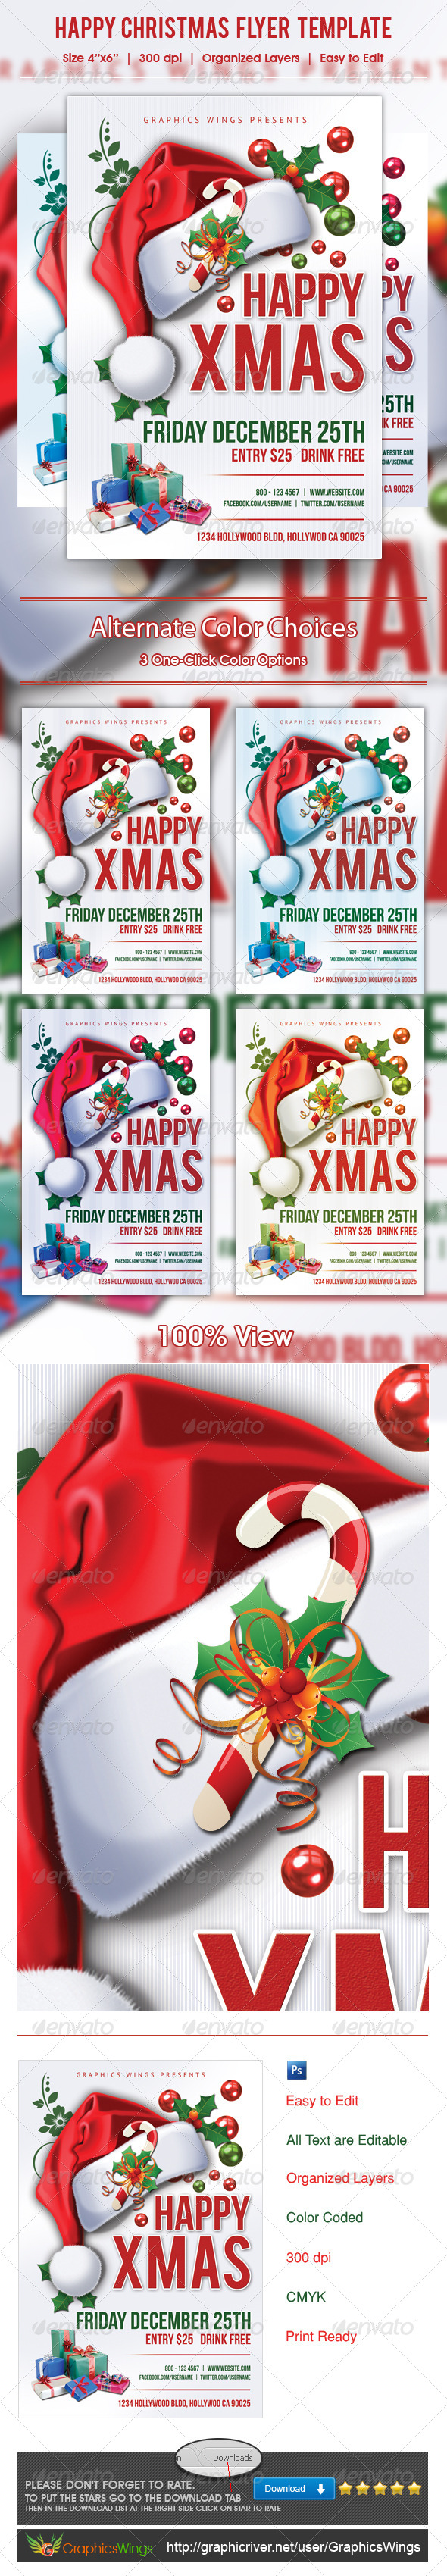 GraphicRiver Happy Christmas Flyer Template 6066660